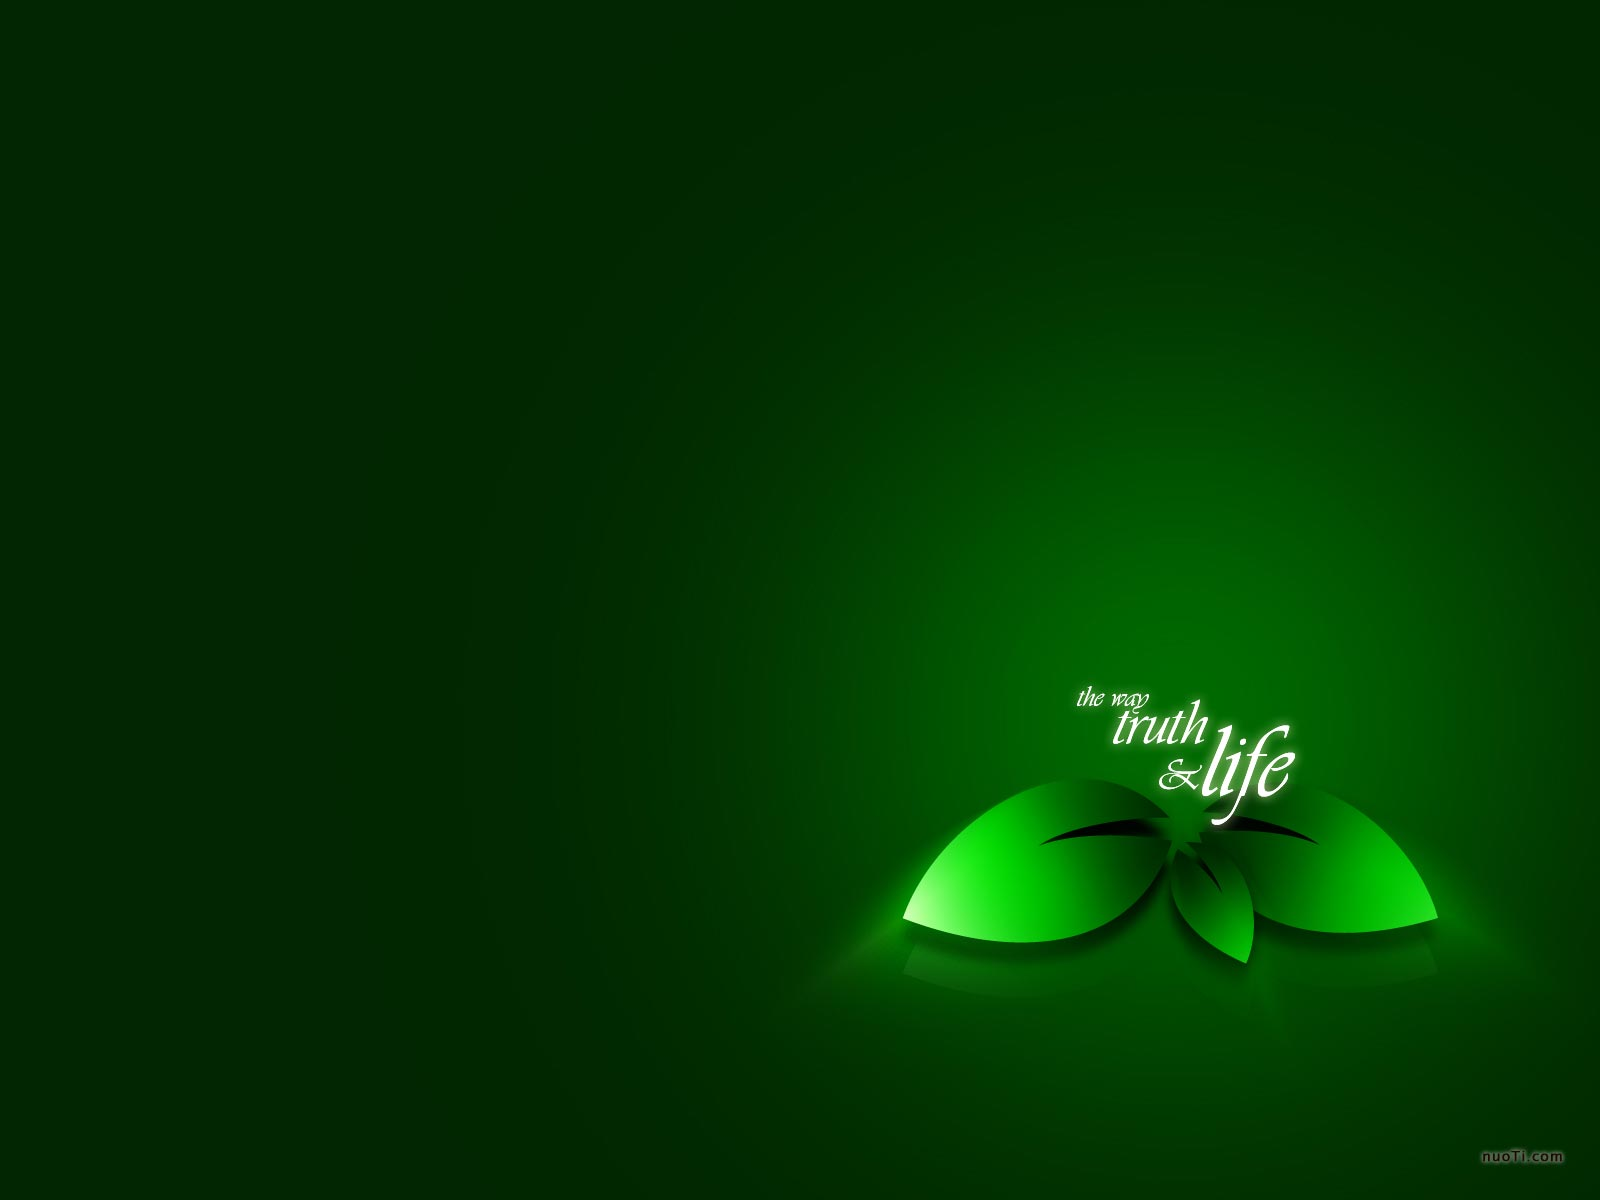 background powerpoint green - wallpaper powerpoint green ANPA San ...